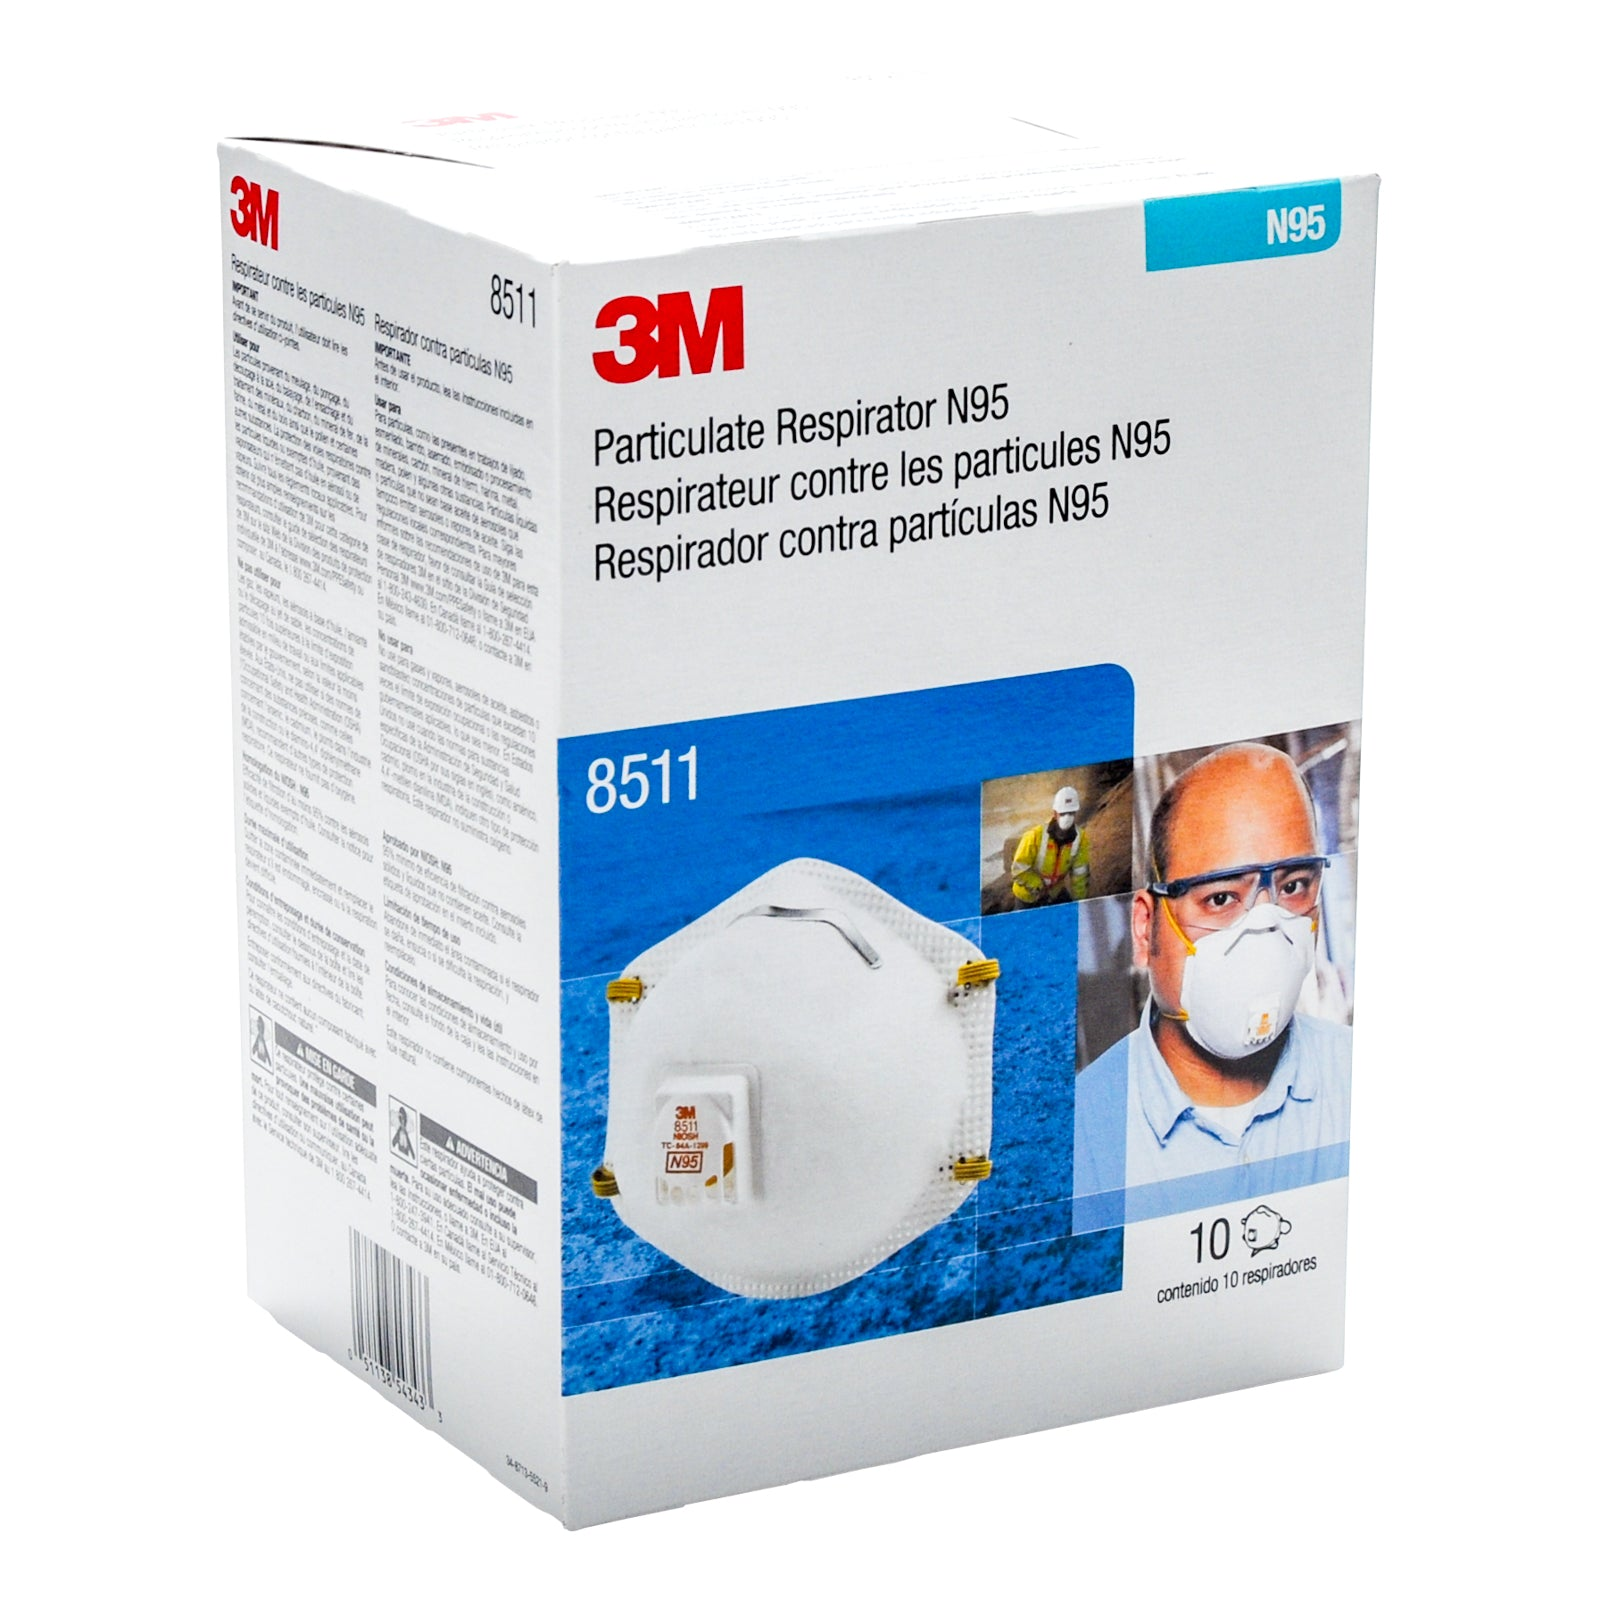 3M 8511 N95 Respirator Masks with Cool Flow Valve (10 Pack), NIOSH Approved